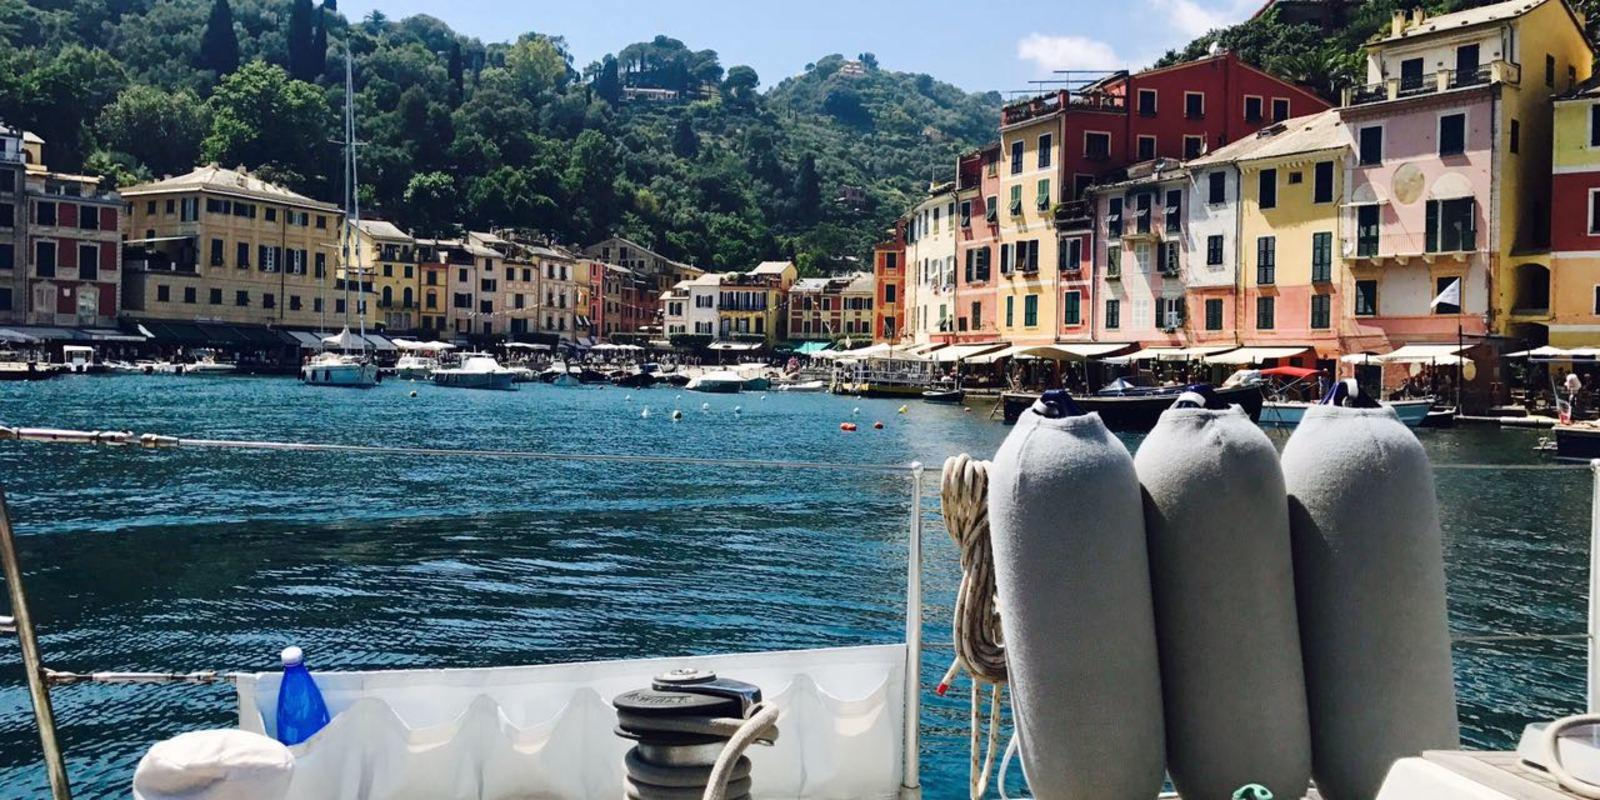 Sailing Weekend & Relaxation in the Gulf of Santa Margherita